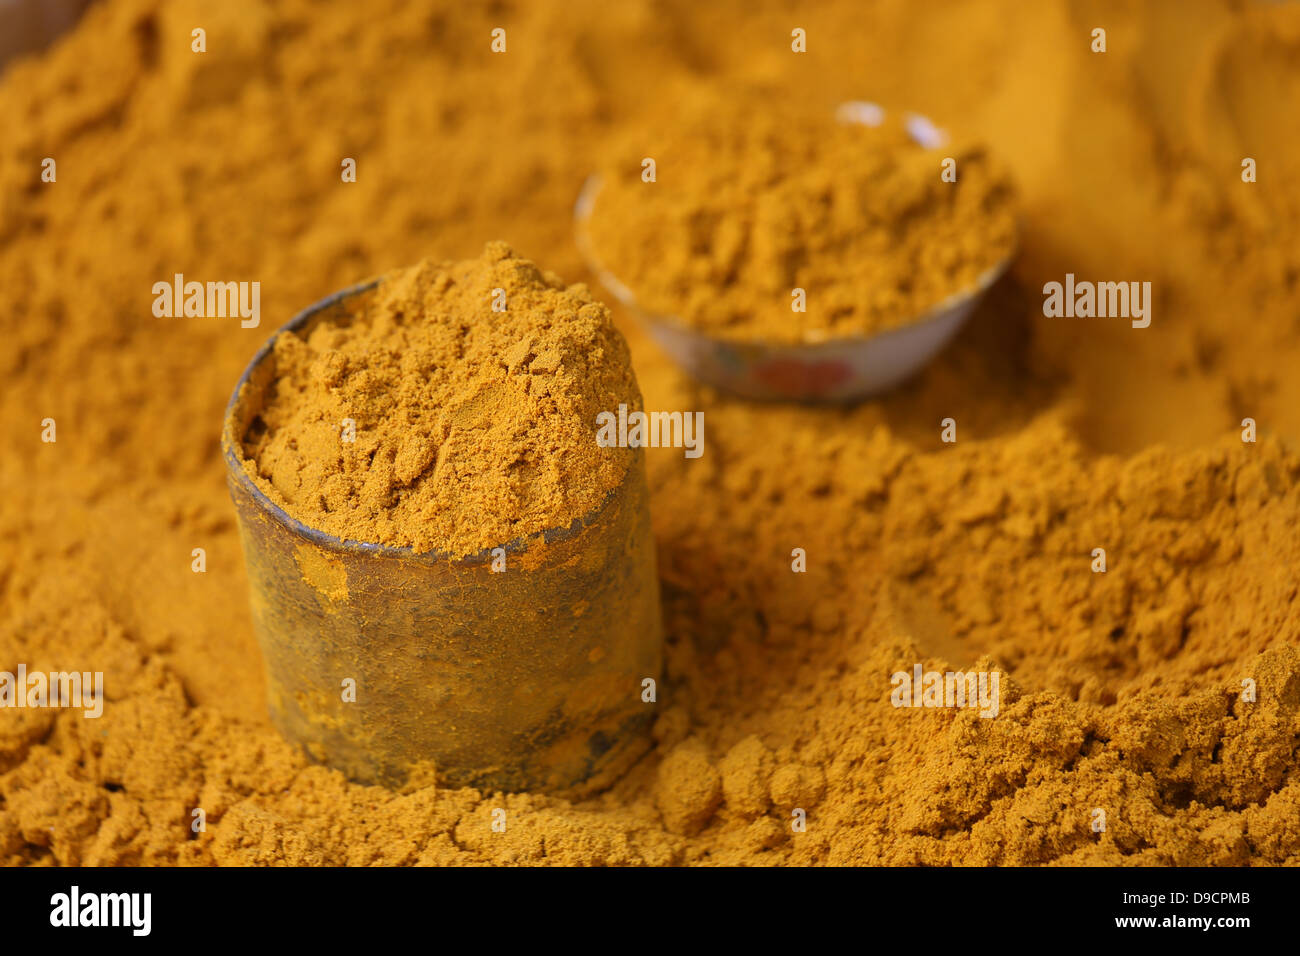 tin cup of ground tumeric spice on mound of tumeric in market on Inle Lake, Myanmar, Southeast Asia - Stock Image